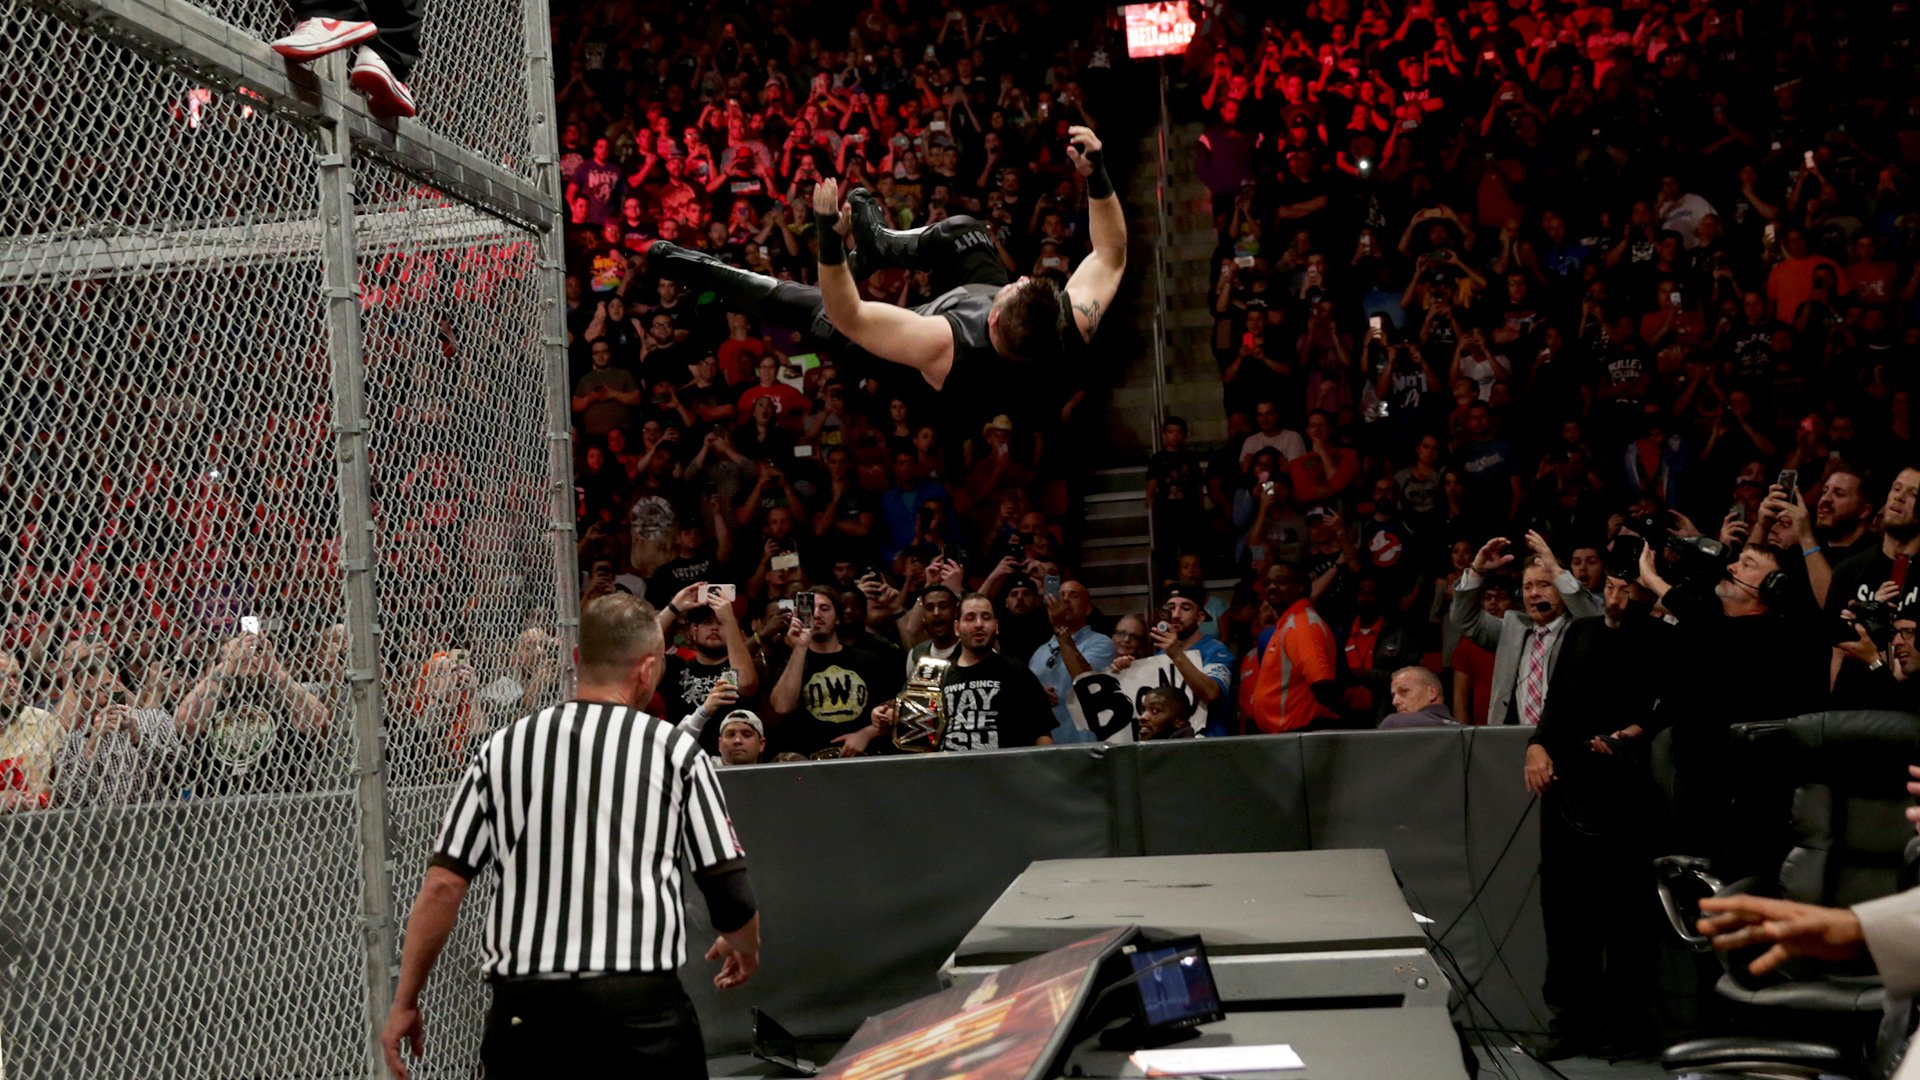 Shane McMahon sends Kevin Owens crashing onto the announce table: WWE Hell in a Cell 2017 (WWE Network Exclusive)